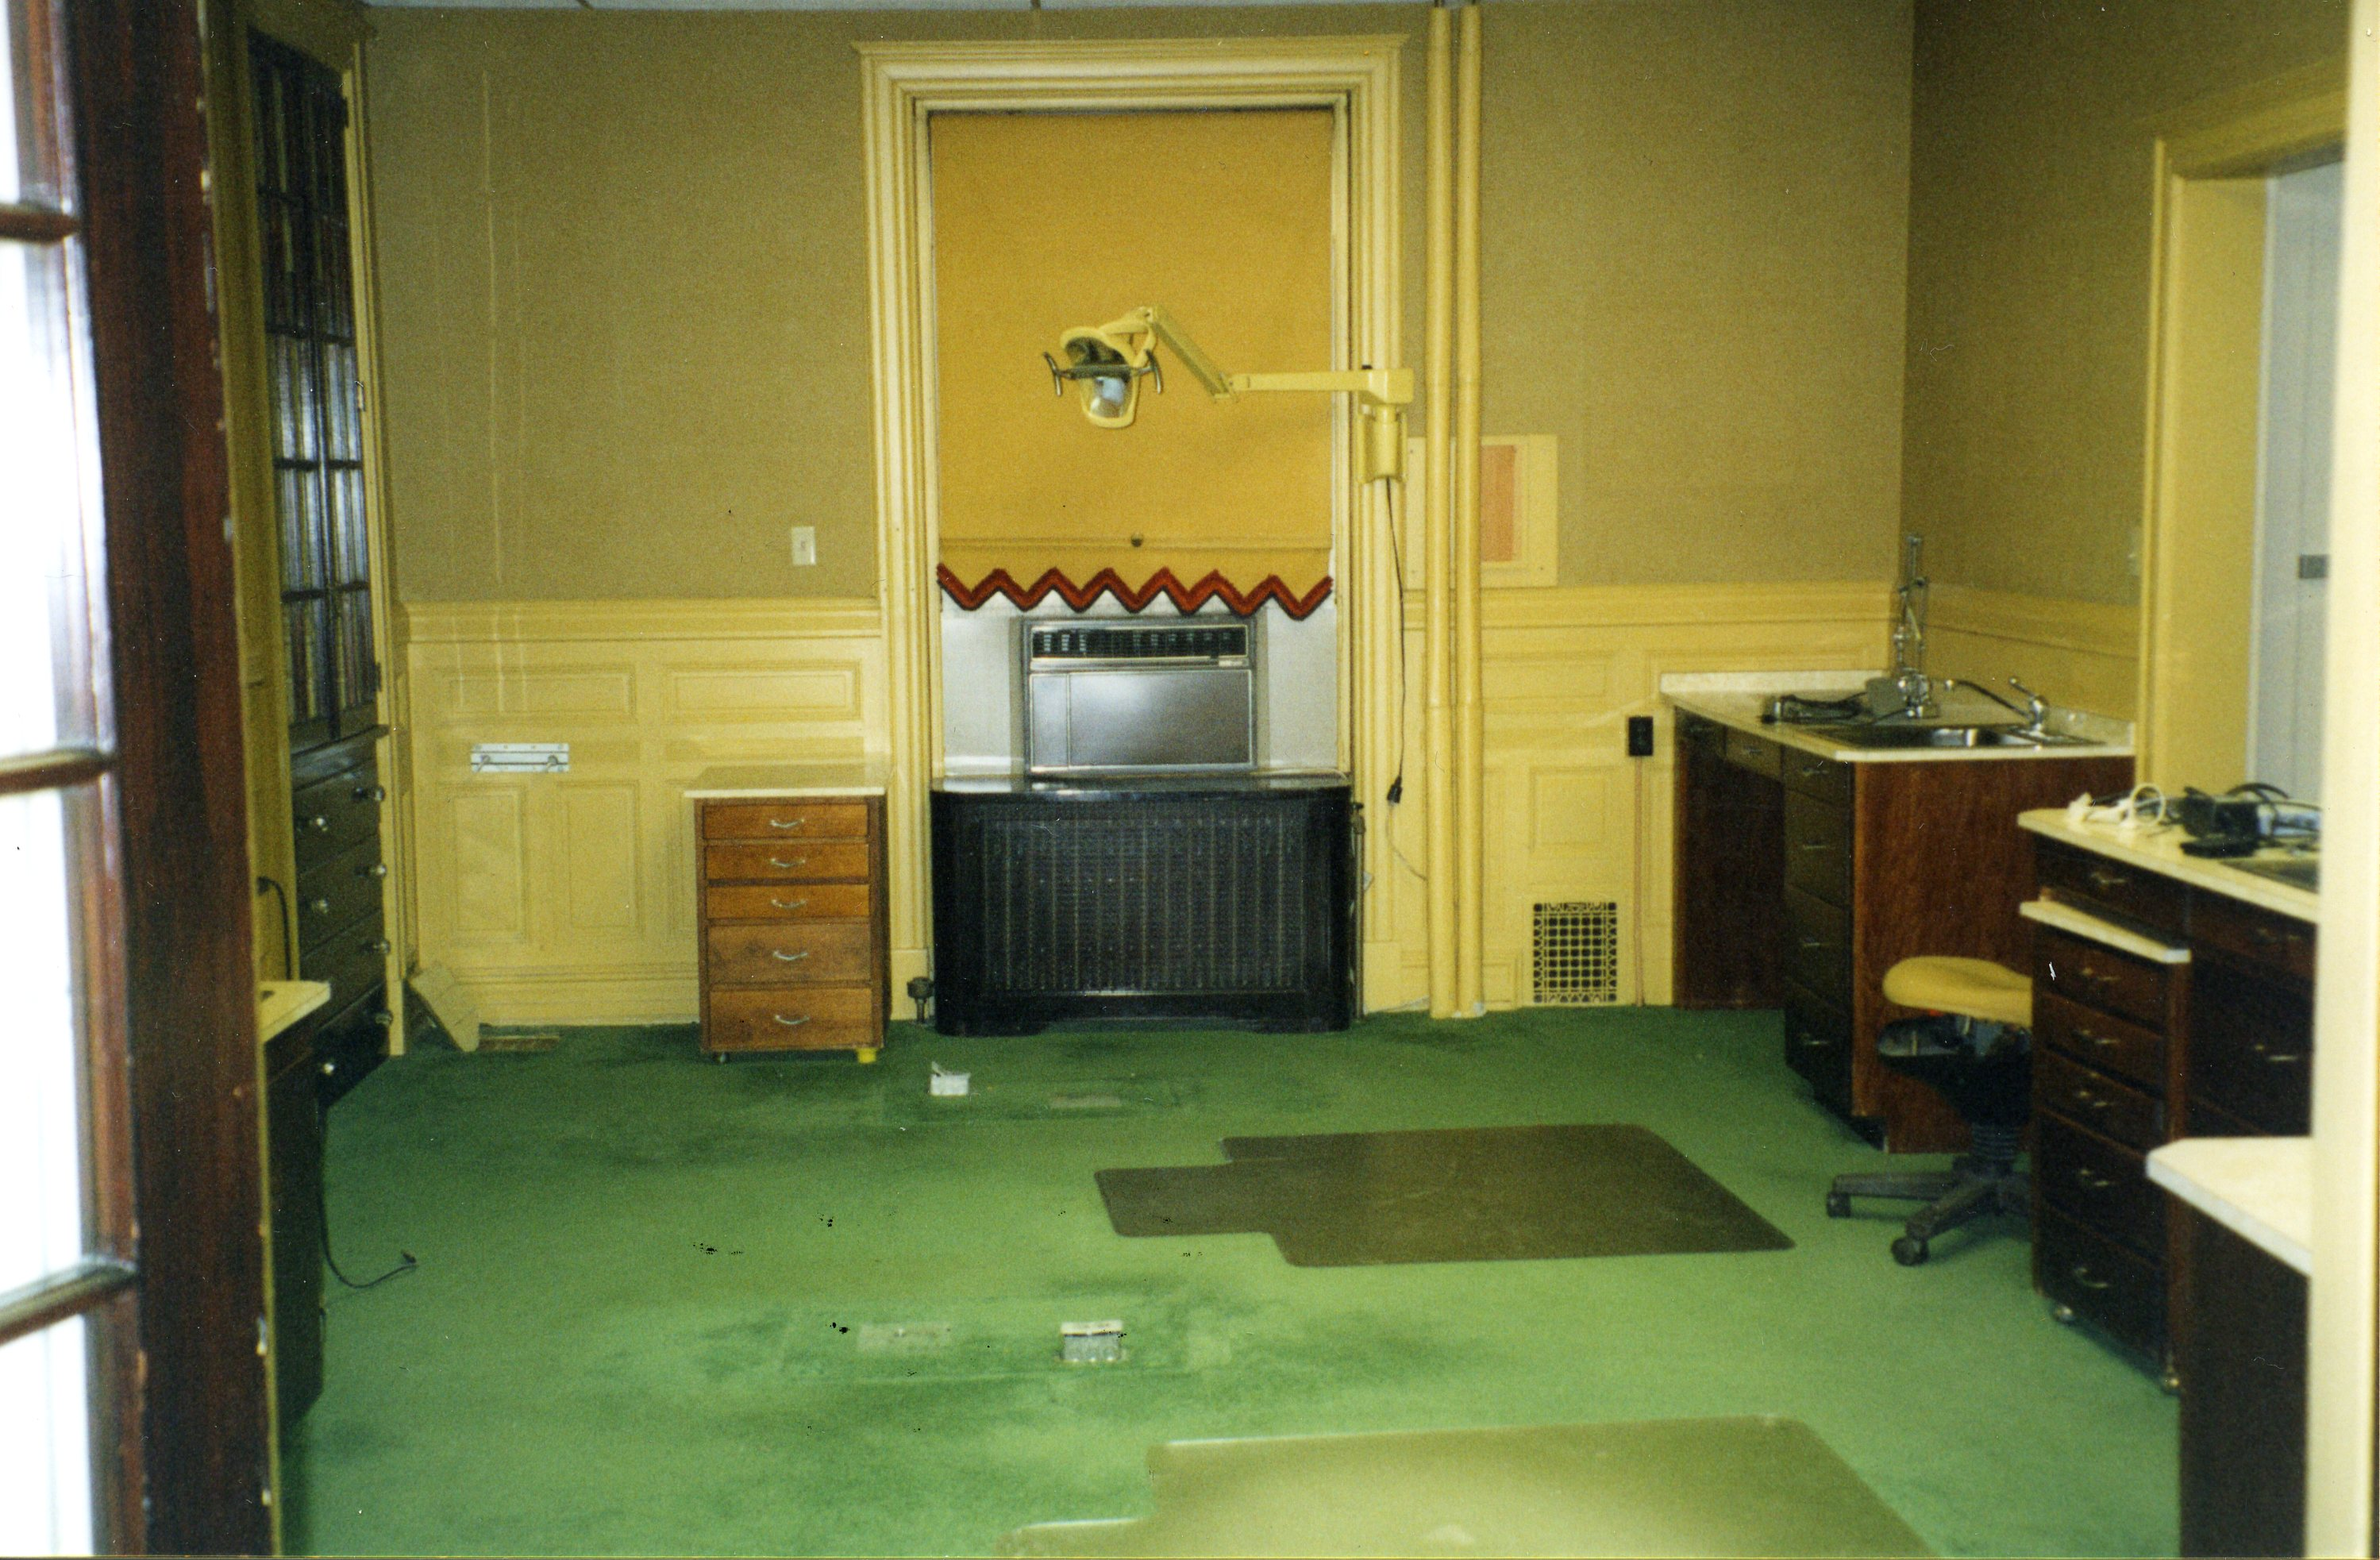 Examination Room, pre-restoration (2002)